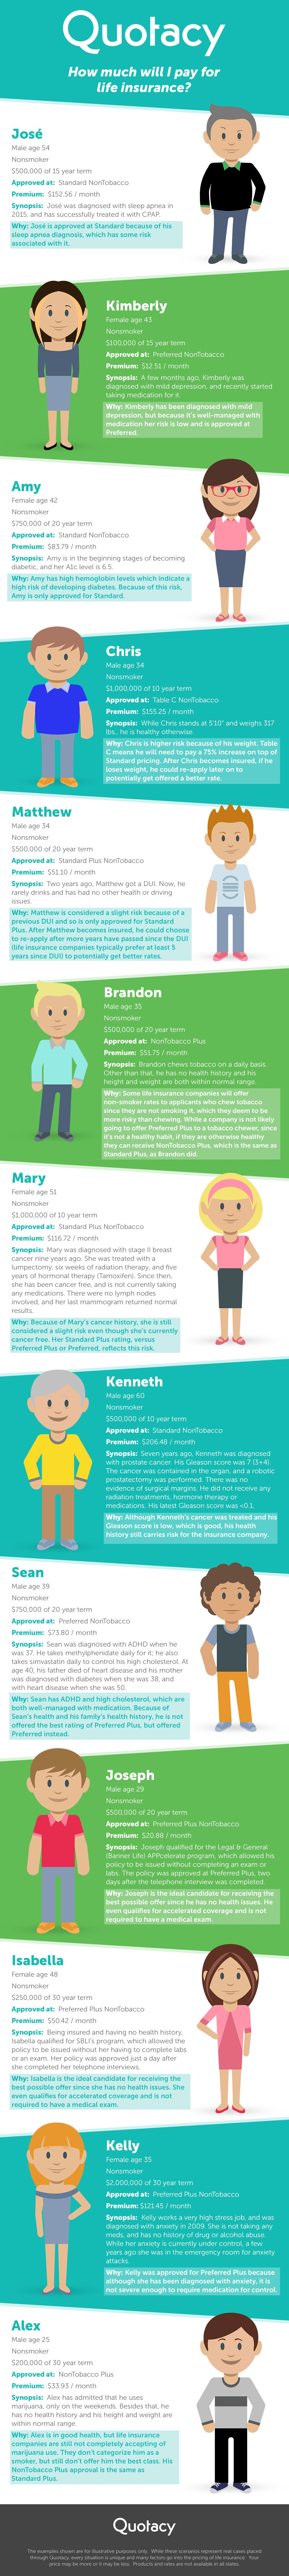 how much will I pay for life insurance infographic